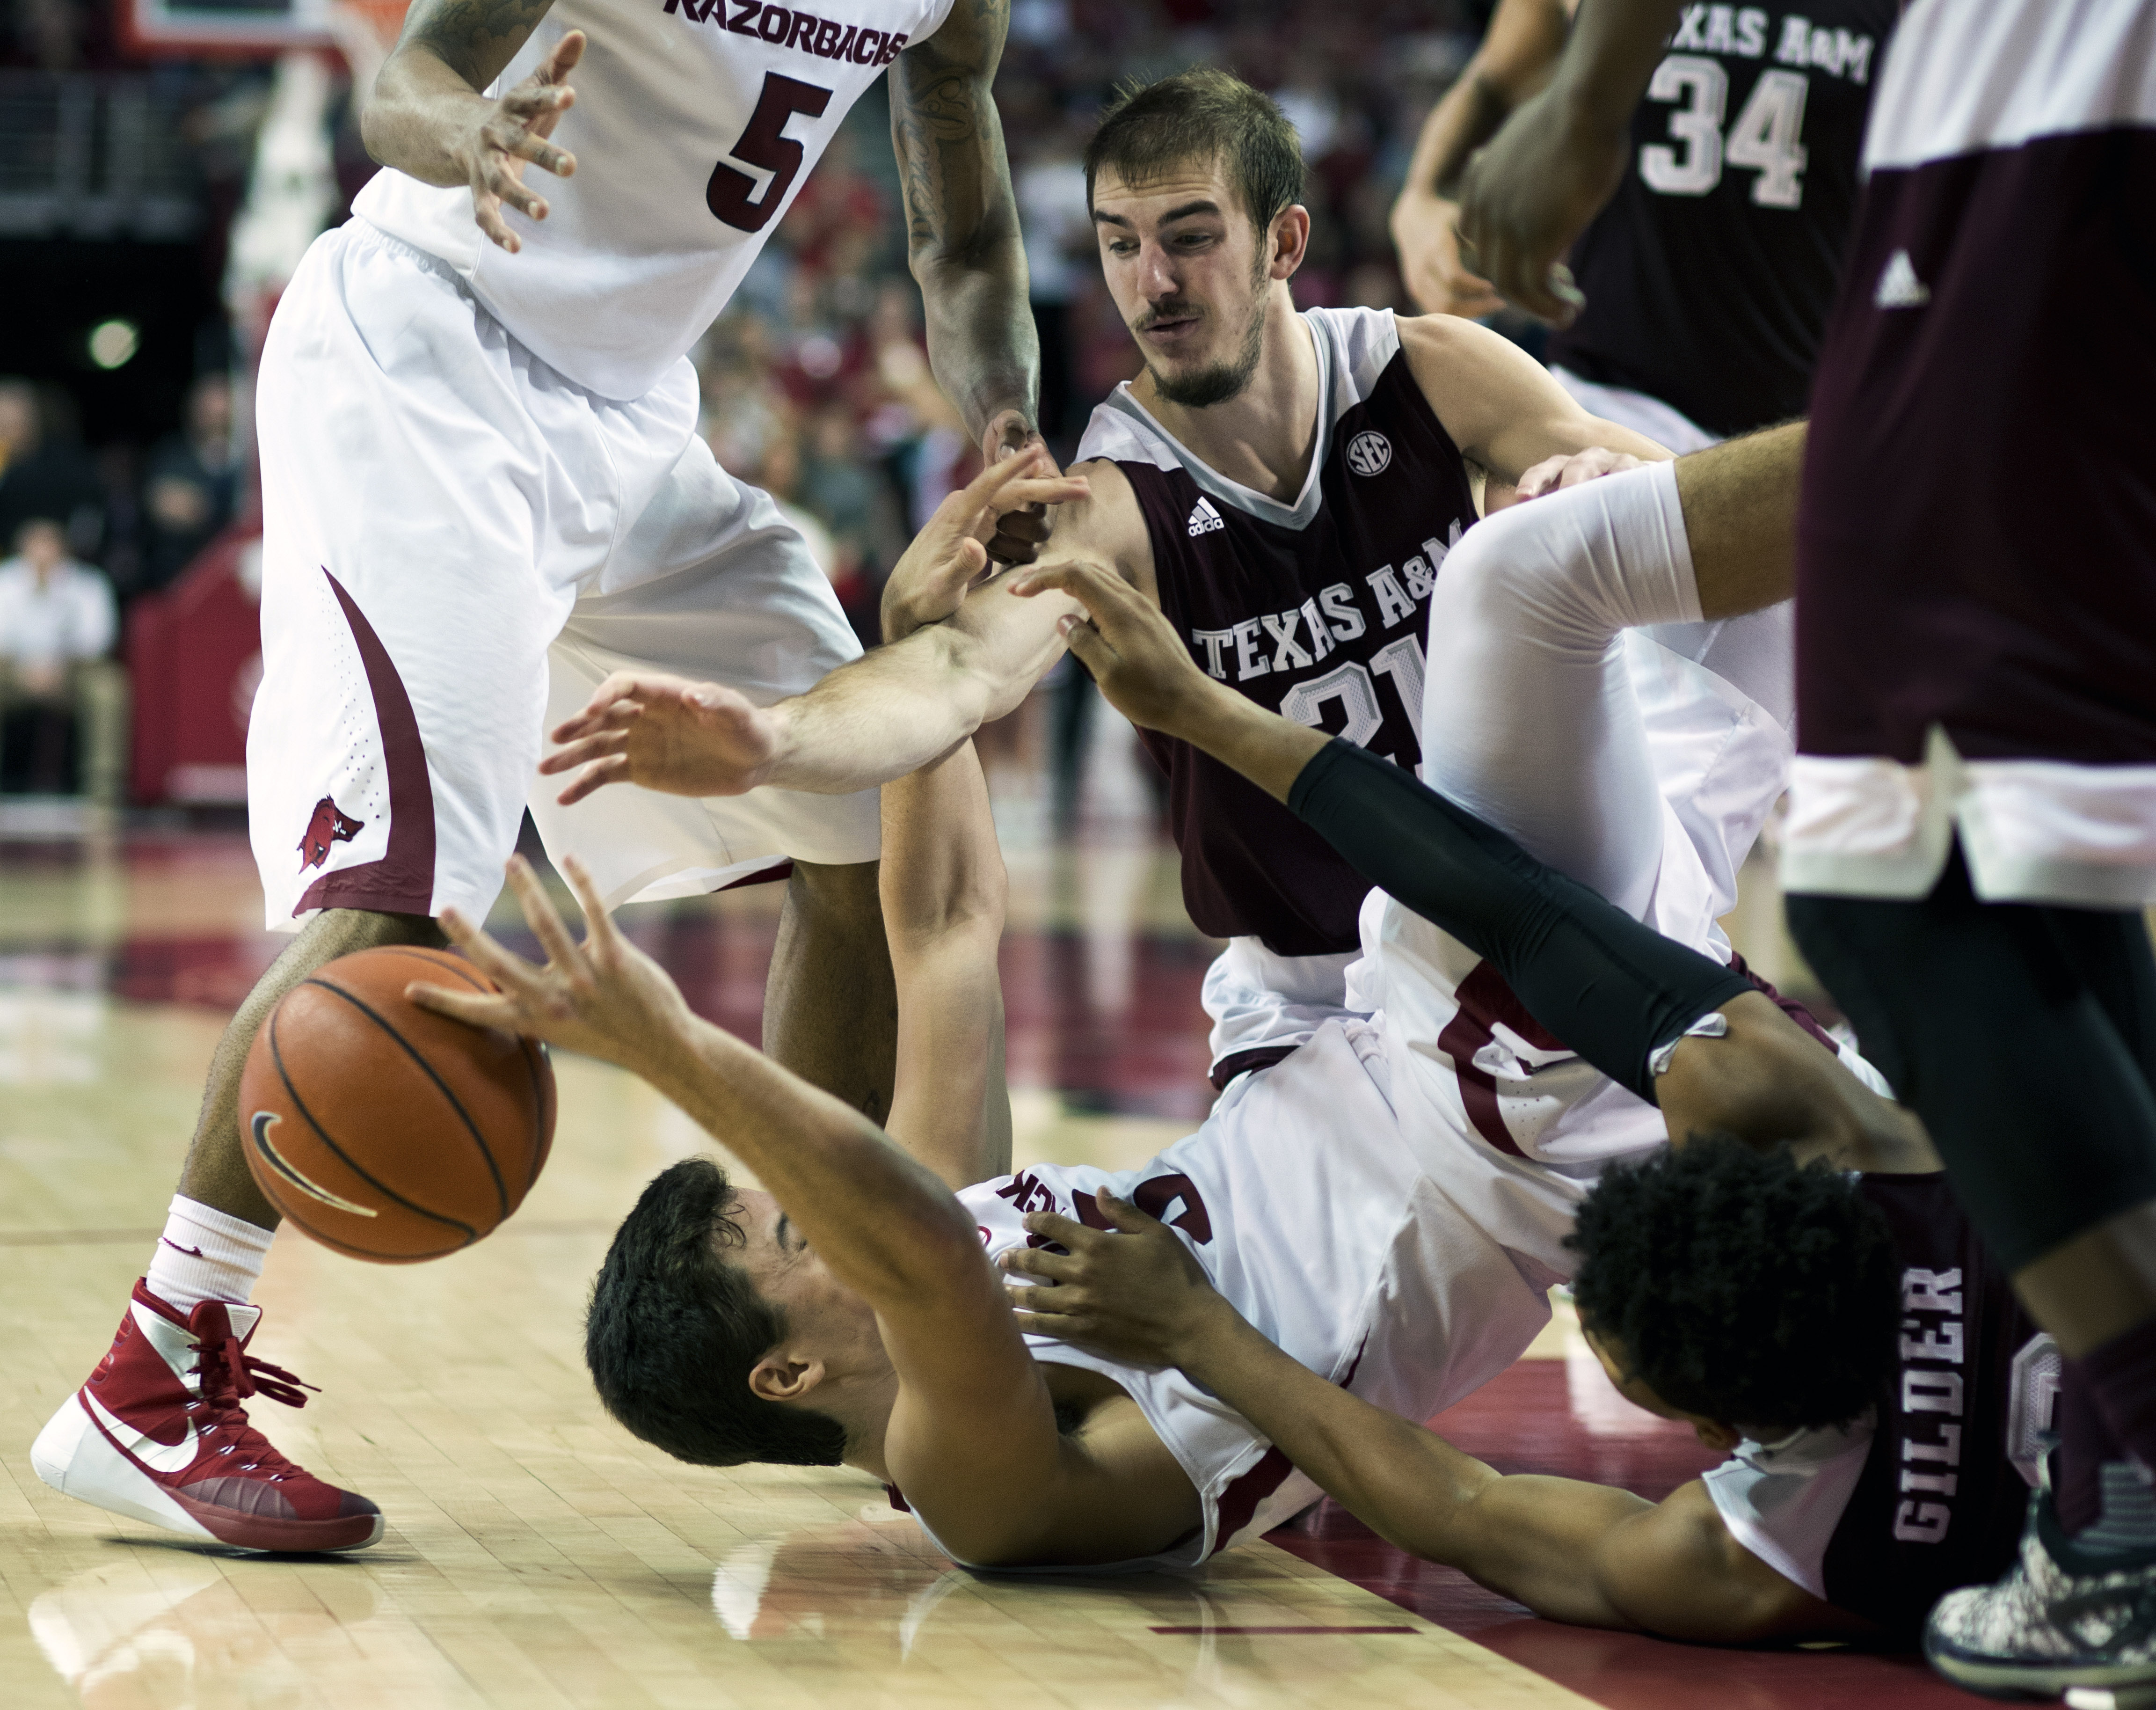 Arkansas' Dusty Hannahs (3) fights for control of the ball against Texas A&M's Alex Caruso (21) in the second half of an NCAA college basketball game in Fayetteville, Ark., Wednesday, Jan. 27, 2016. Arkansas won 74-71. (AP Photo/Sarah Bentham)